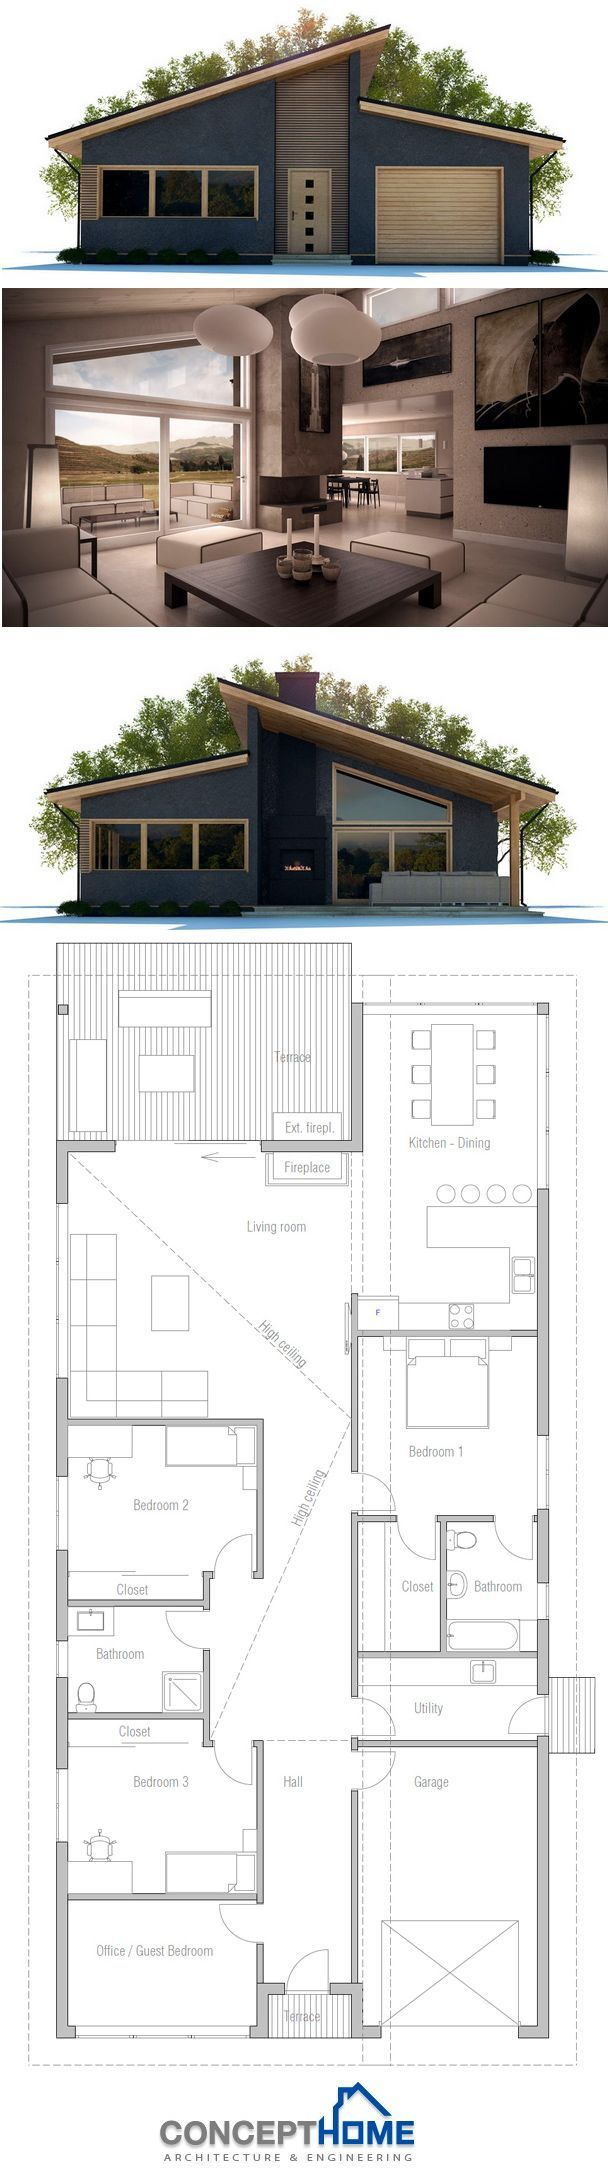 100 best Small home plans images by Home Design on Pinterest ...